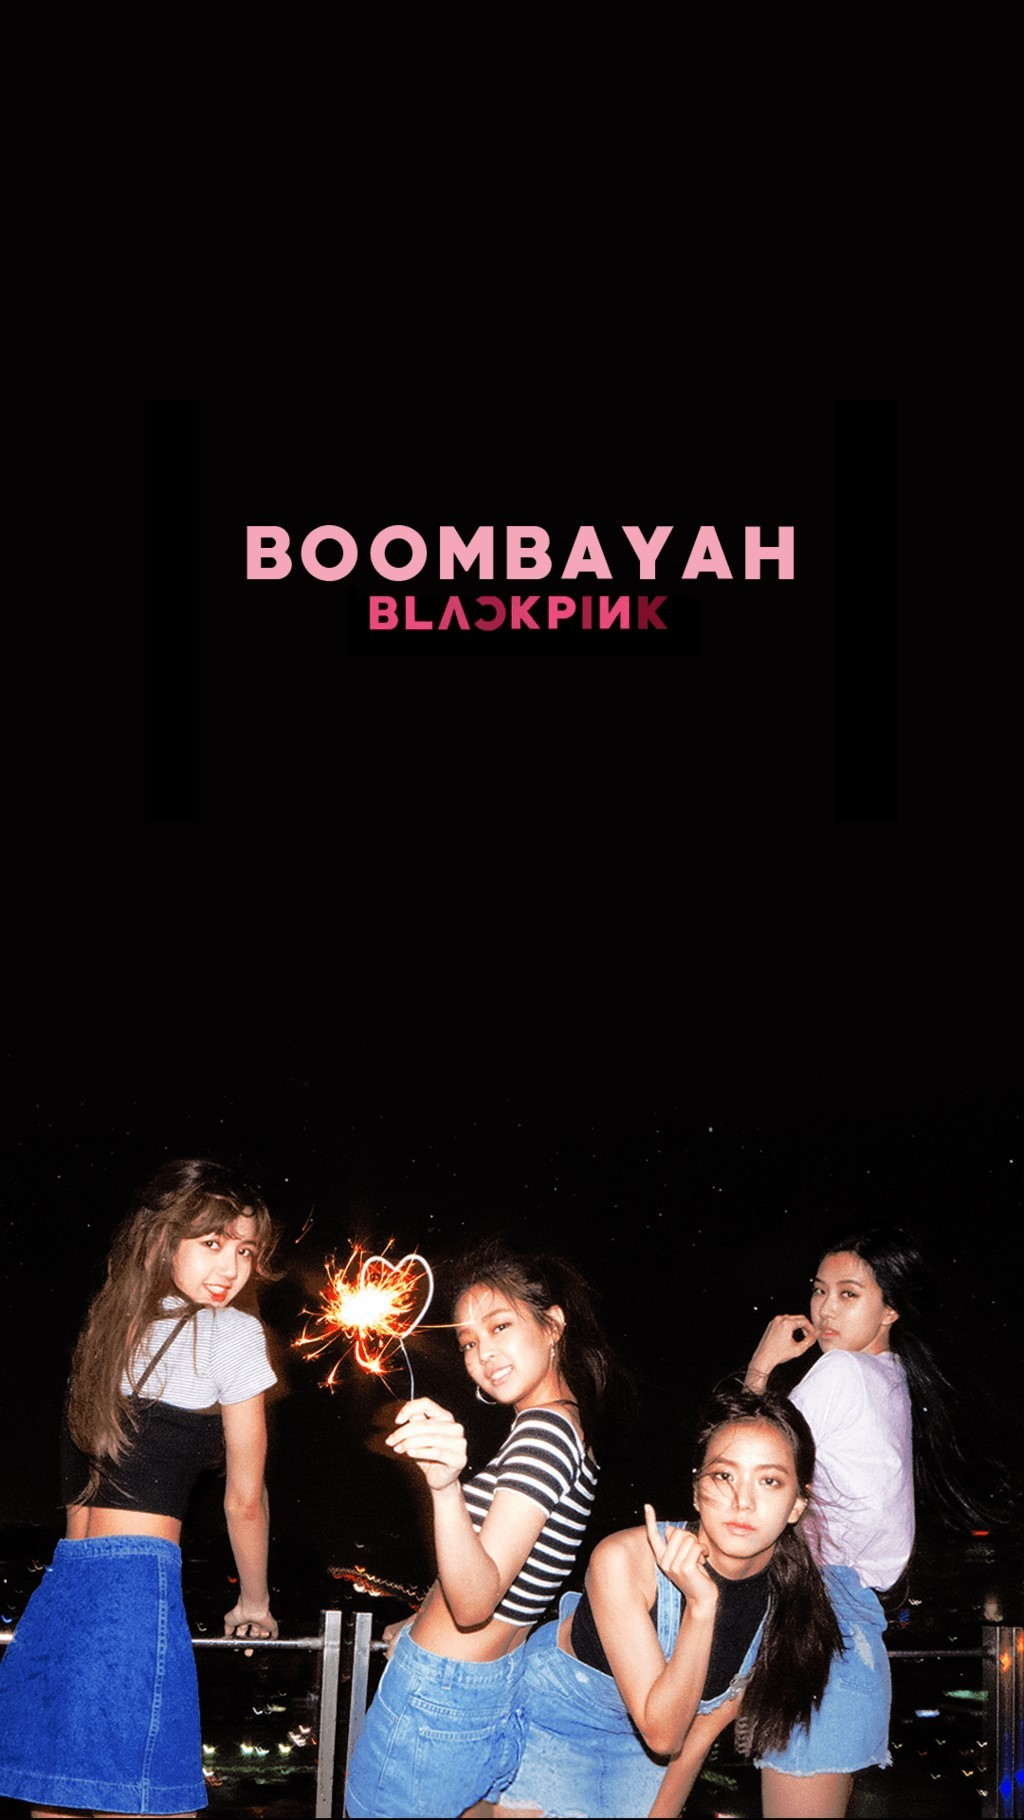 Blackpink Boombayah Wallpaper